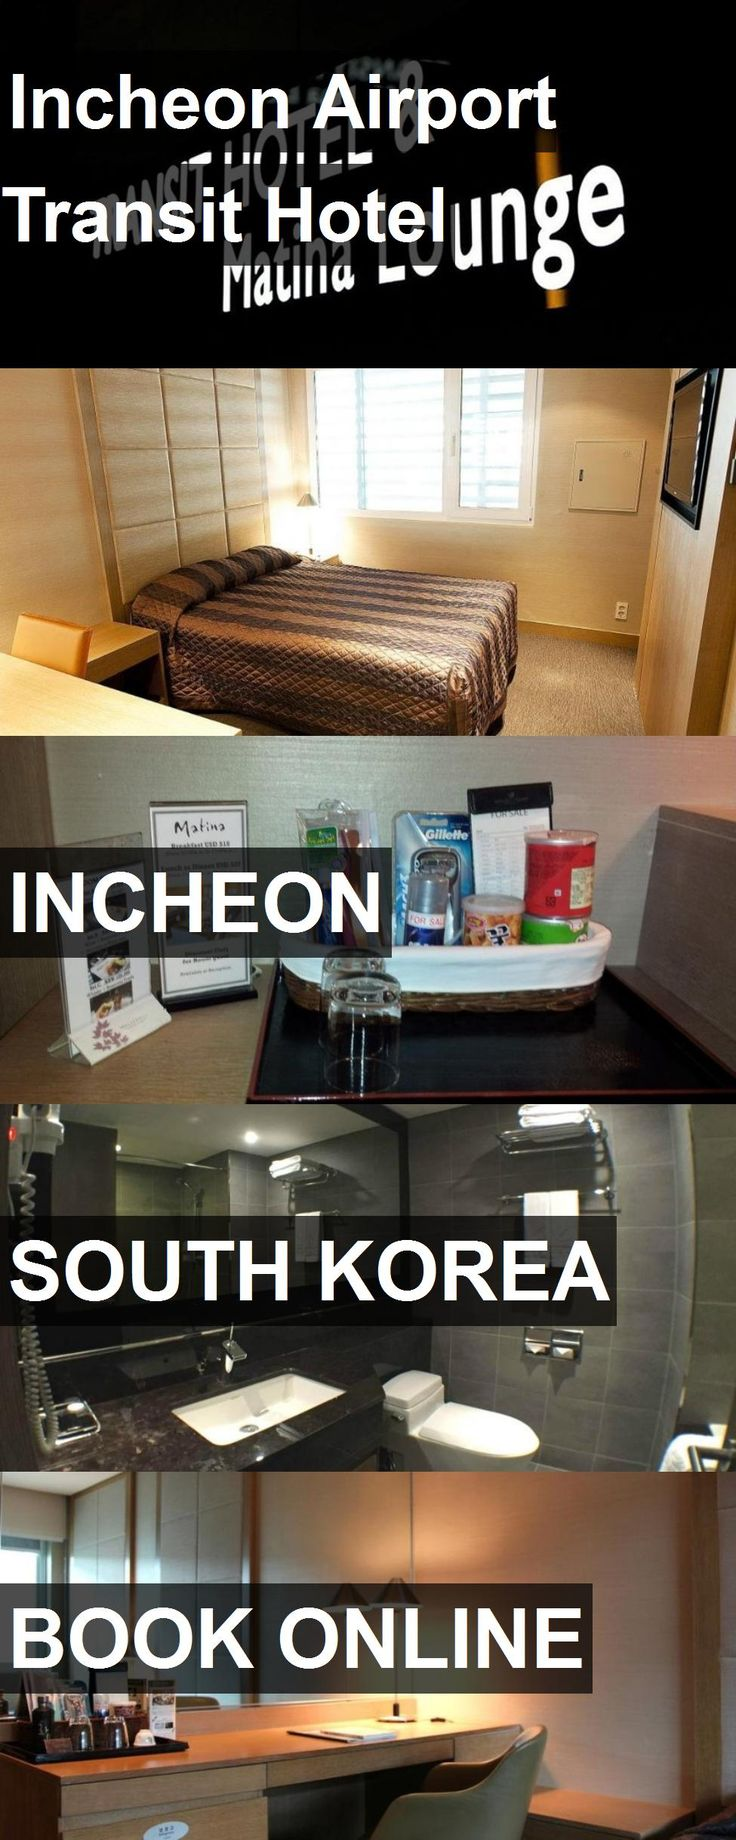 Incheon Airport Transit Hotel in Incheon, South Korea. For more information, photos, reviews and best prices please follow the link. #SouthKorea #Incheon #travel #vacation #hotel